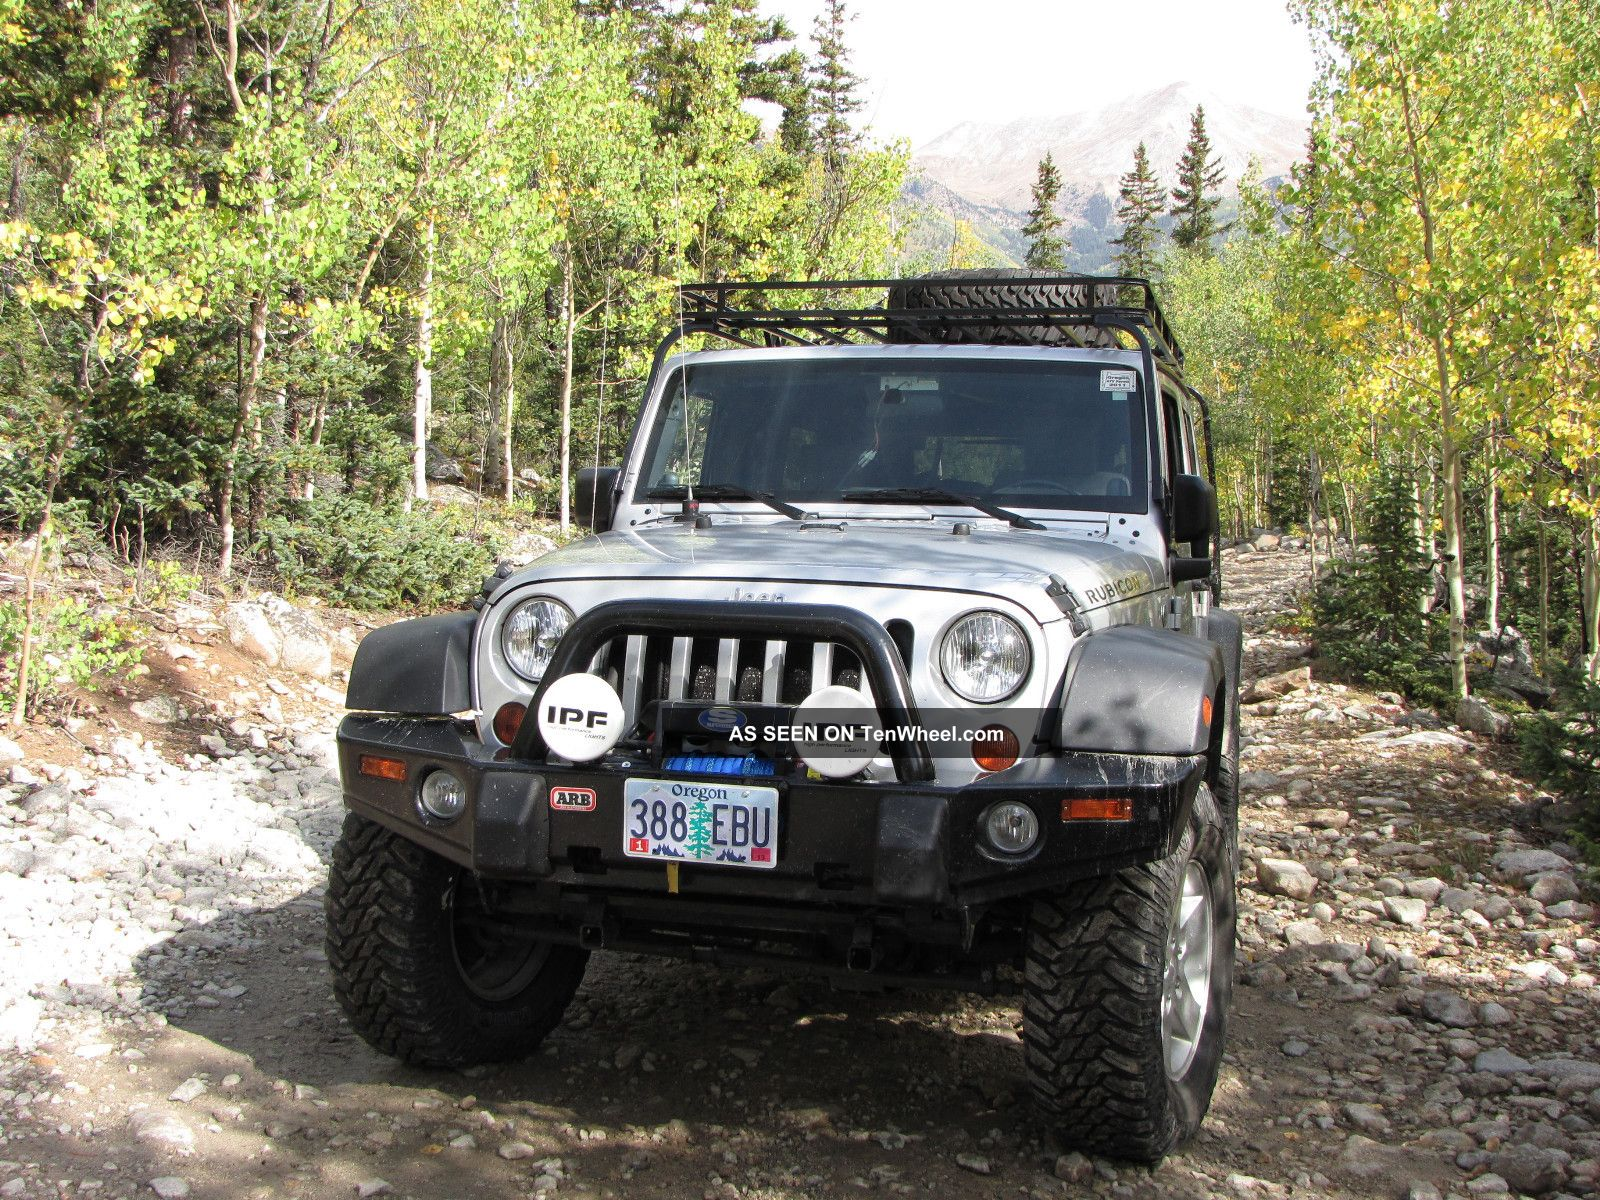 2008 jeep wrangler unlimited rubicon silver wrangler photo. Cars Review. Best American Auto & Cars Review